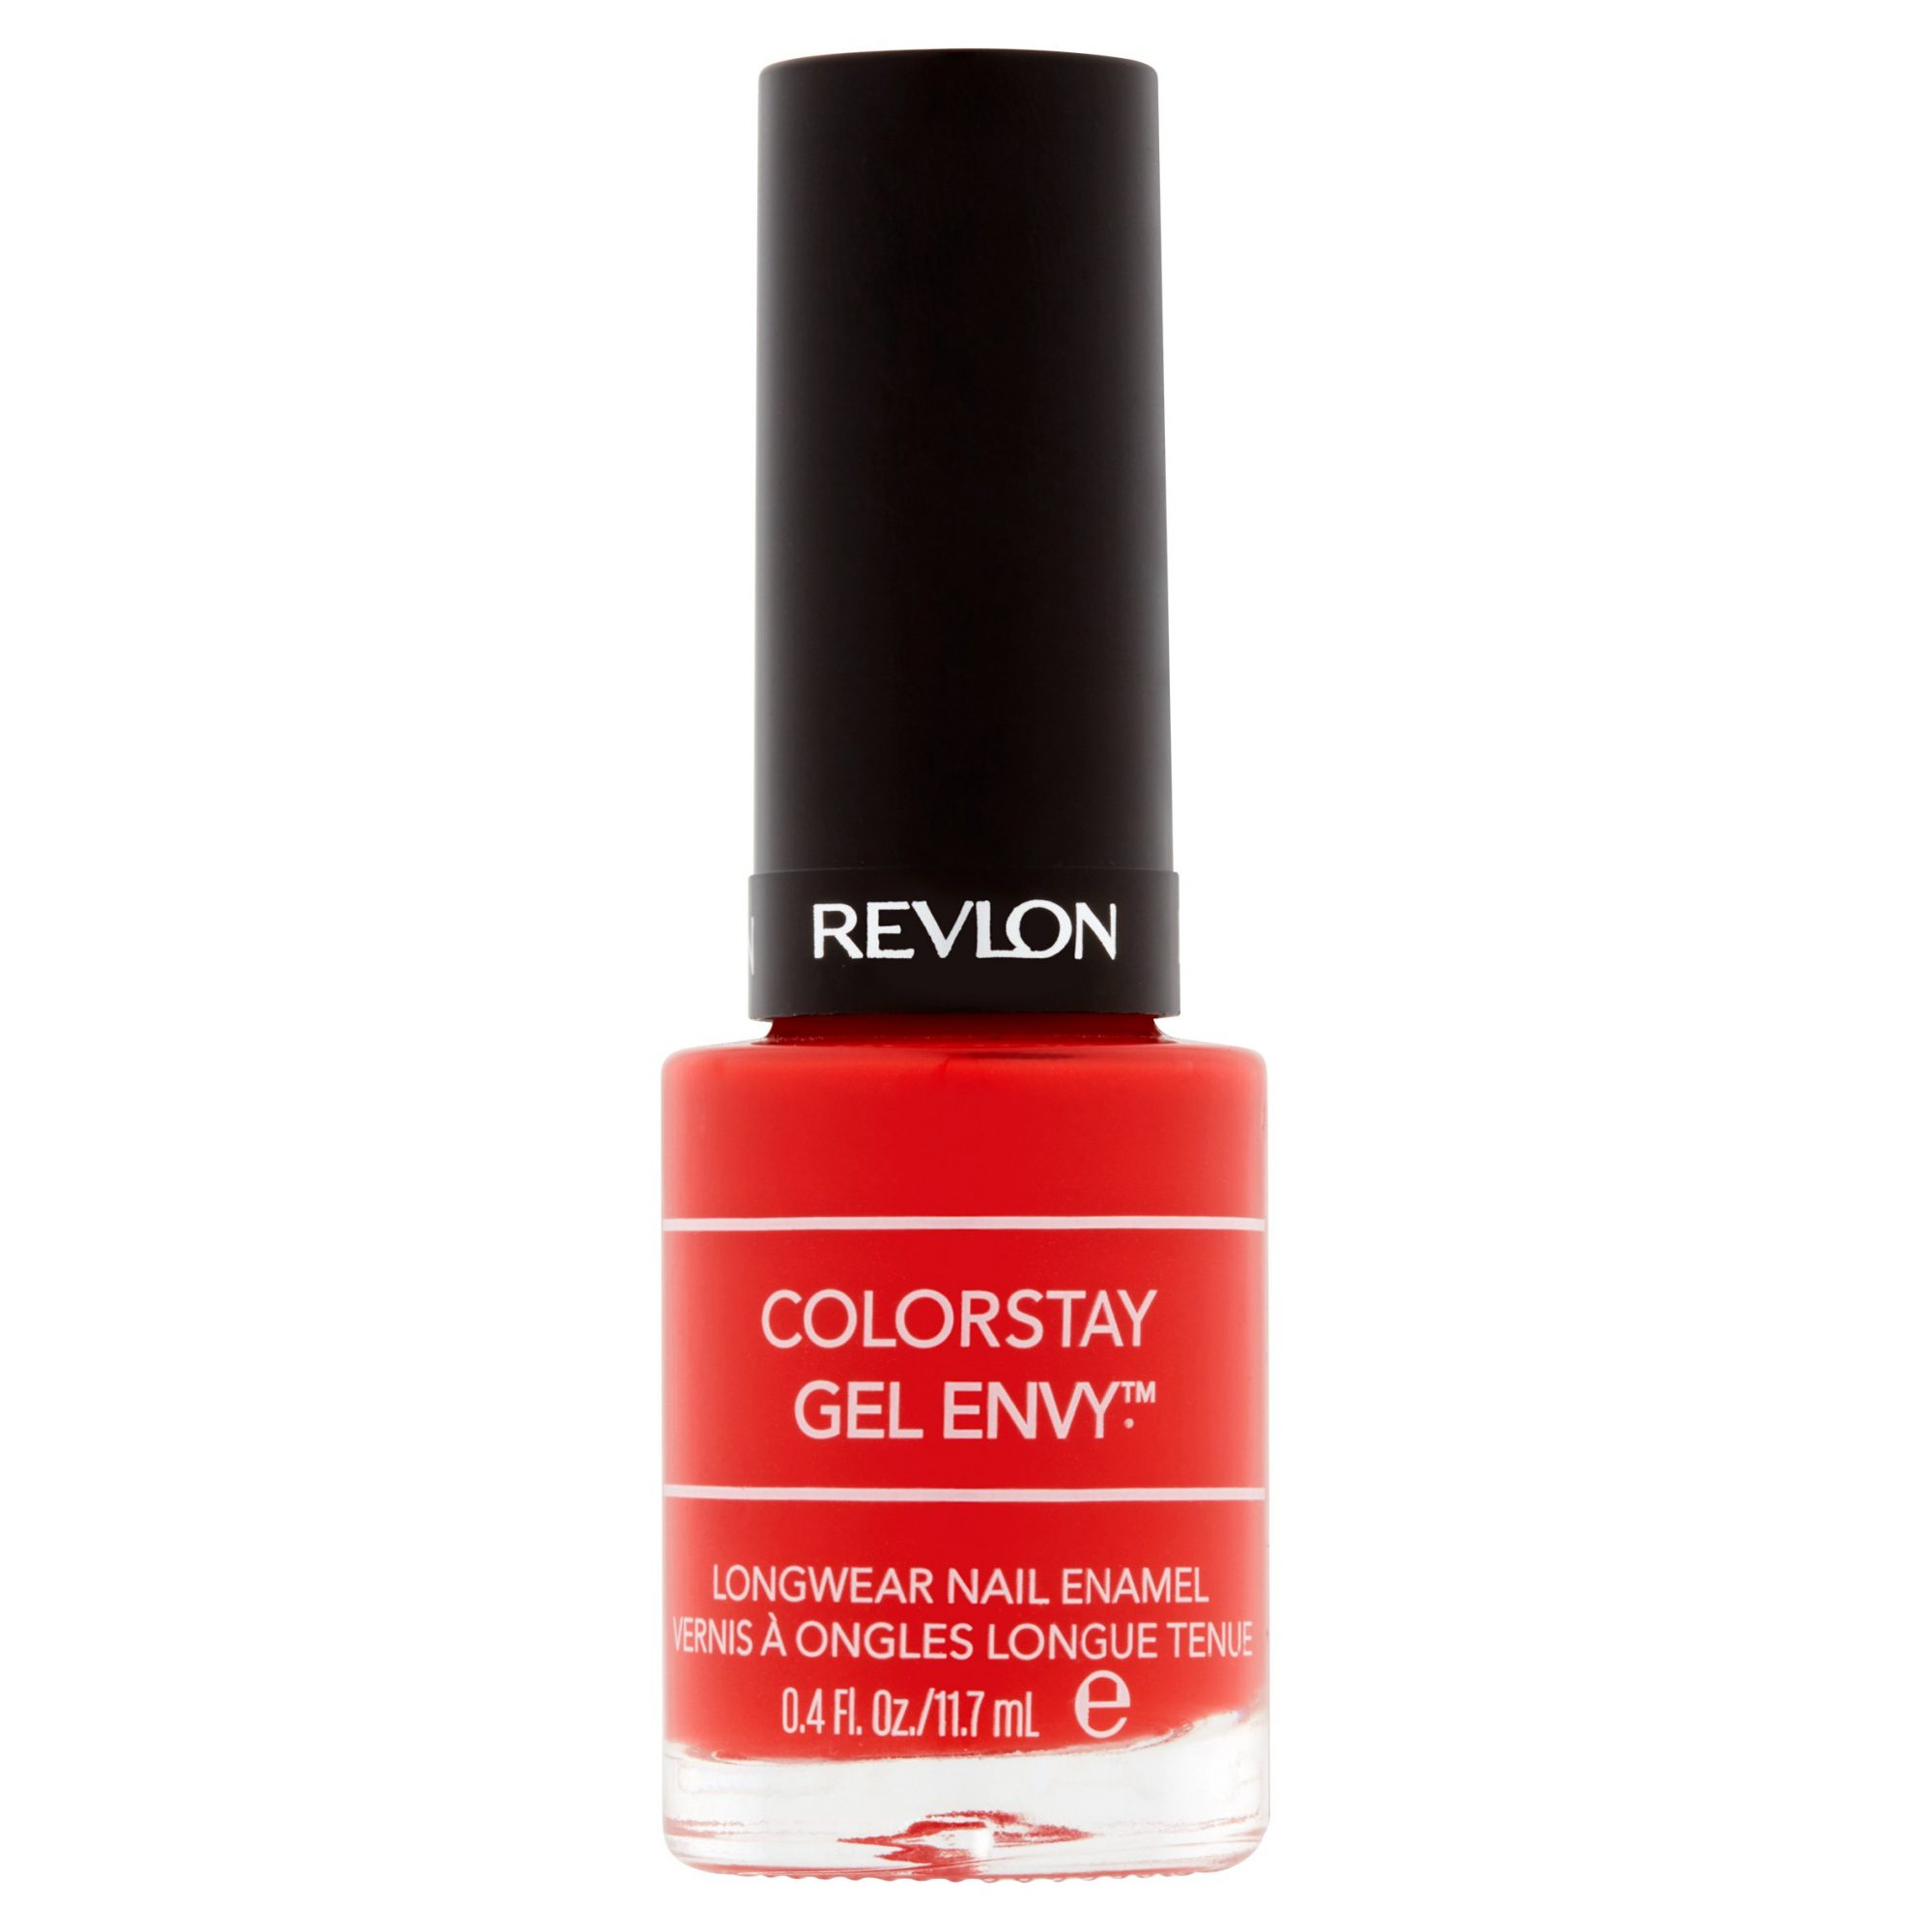 ColorStay Gel Envy Longwear Nail Enamel in Get Lucky